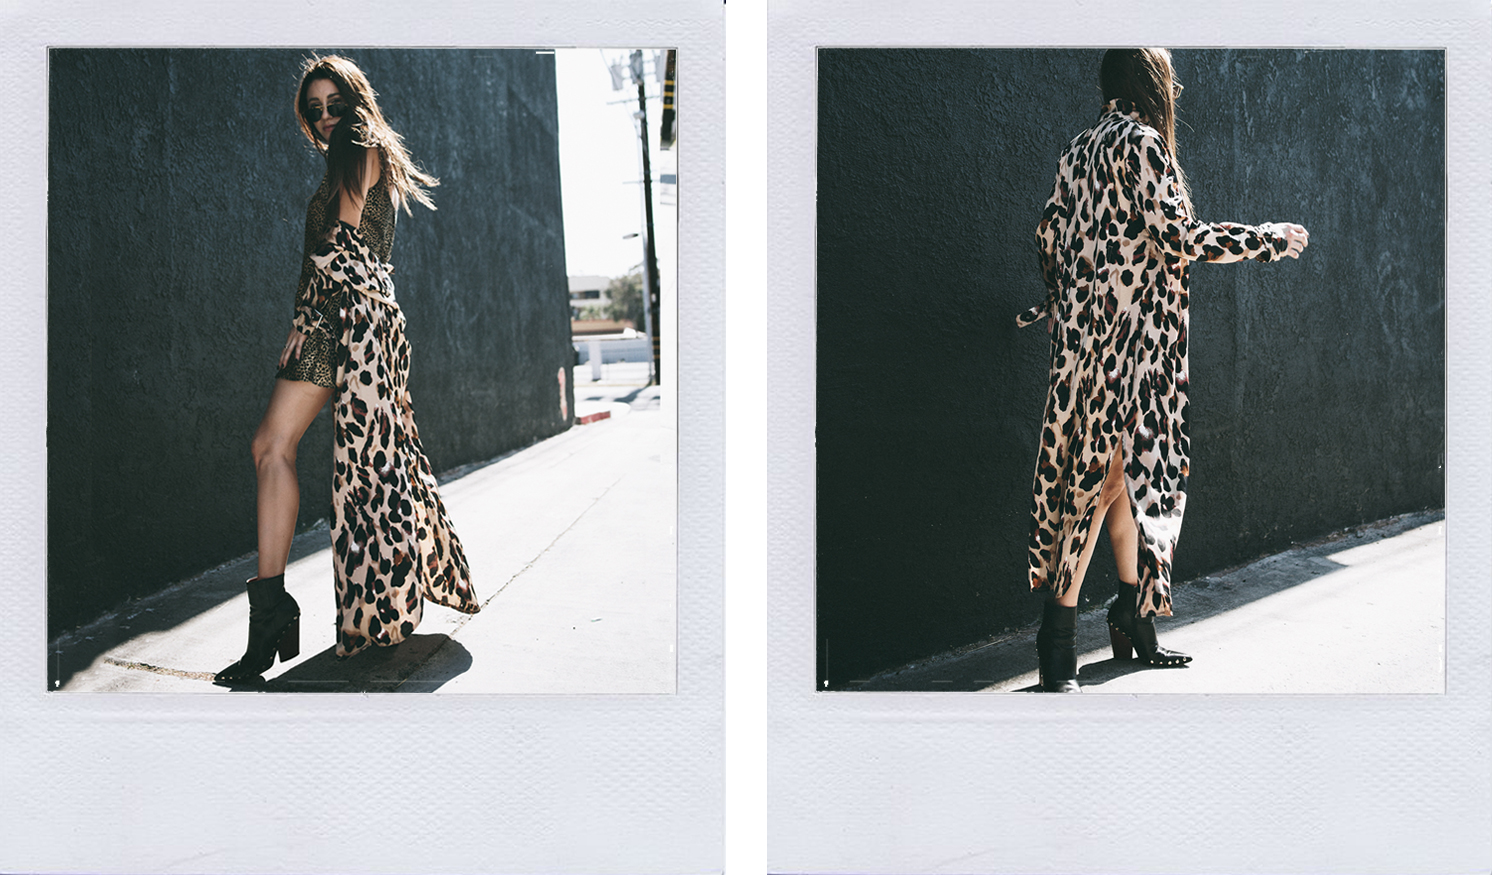 erica stolman wearing leopard trench coat. How to cleanse your mind by living a minimalist life